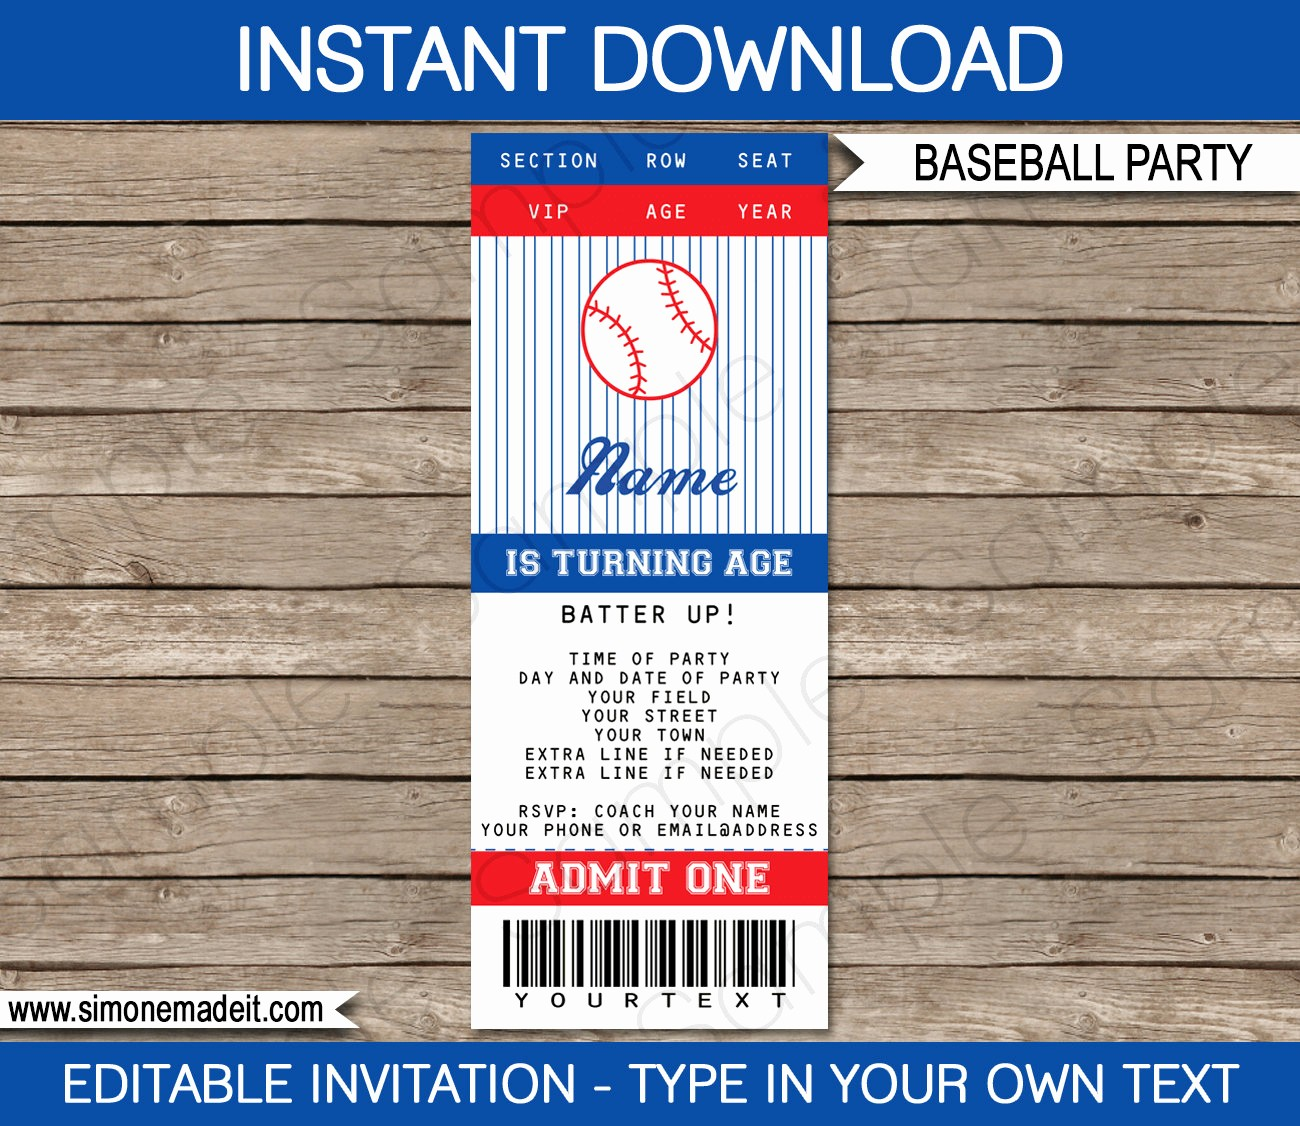 Baseball Ticket Invitation Template Free Best Of Baseball Ticket Invitation Template Birthday Party Instant